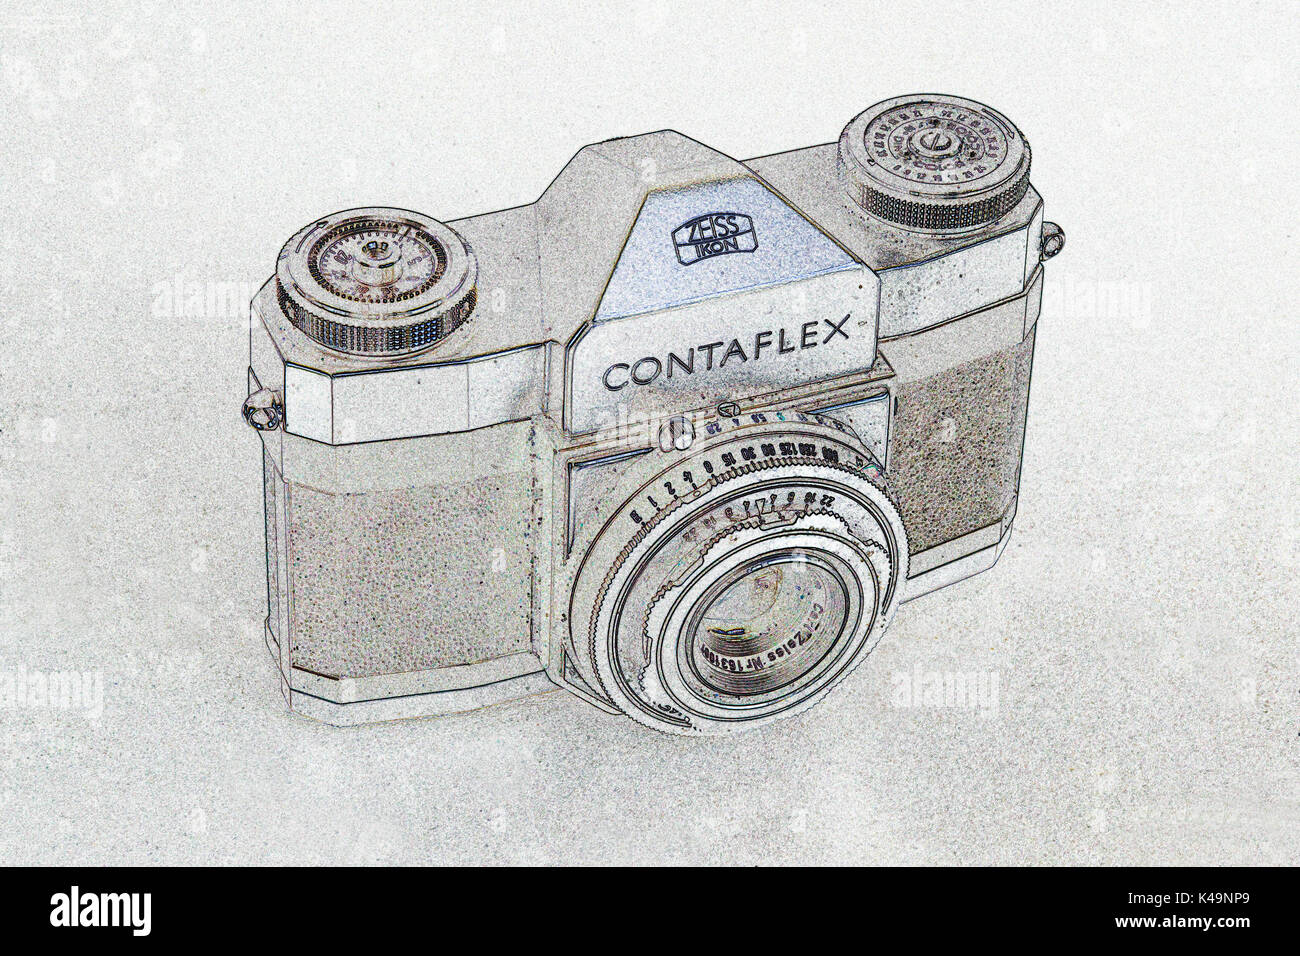 24x36 Stock Photos & 24x36 Stock Images - Alamy